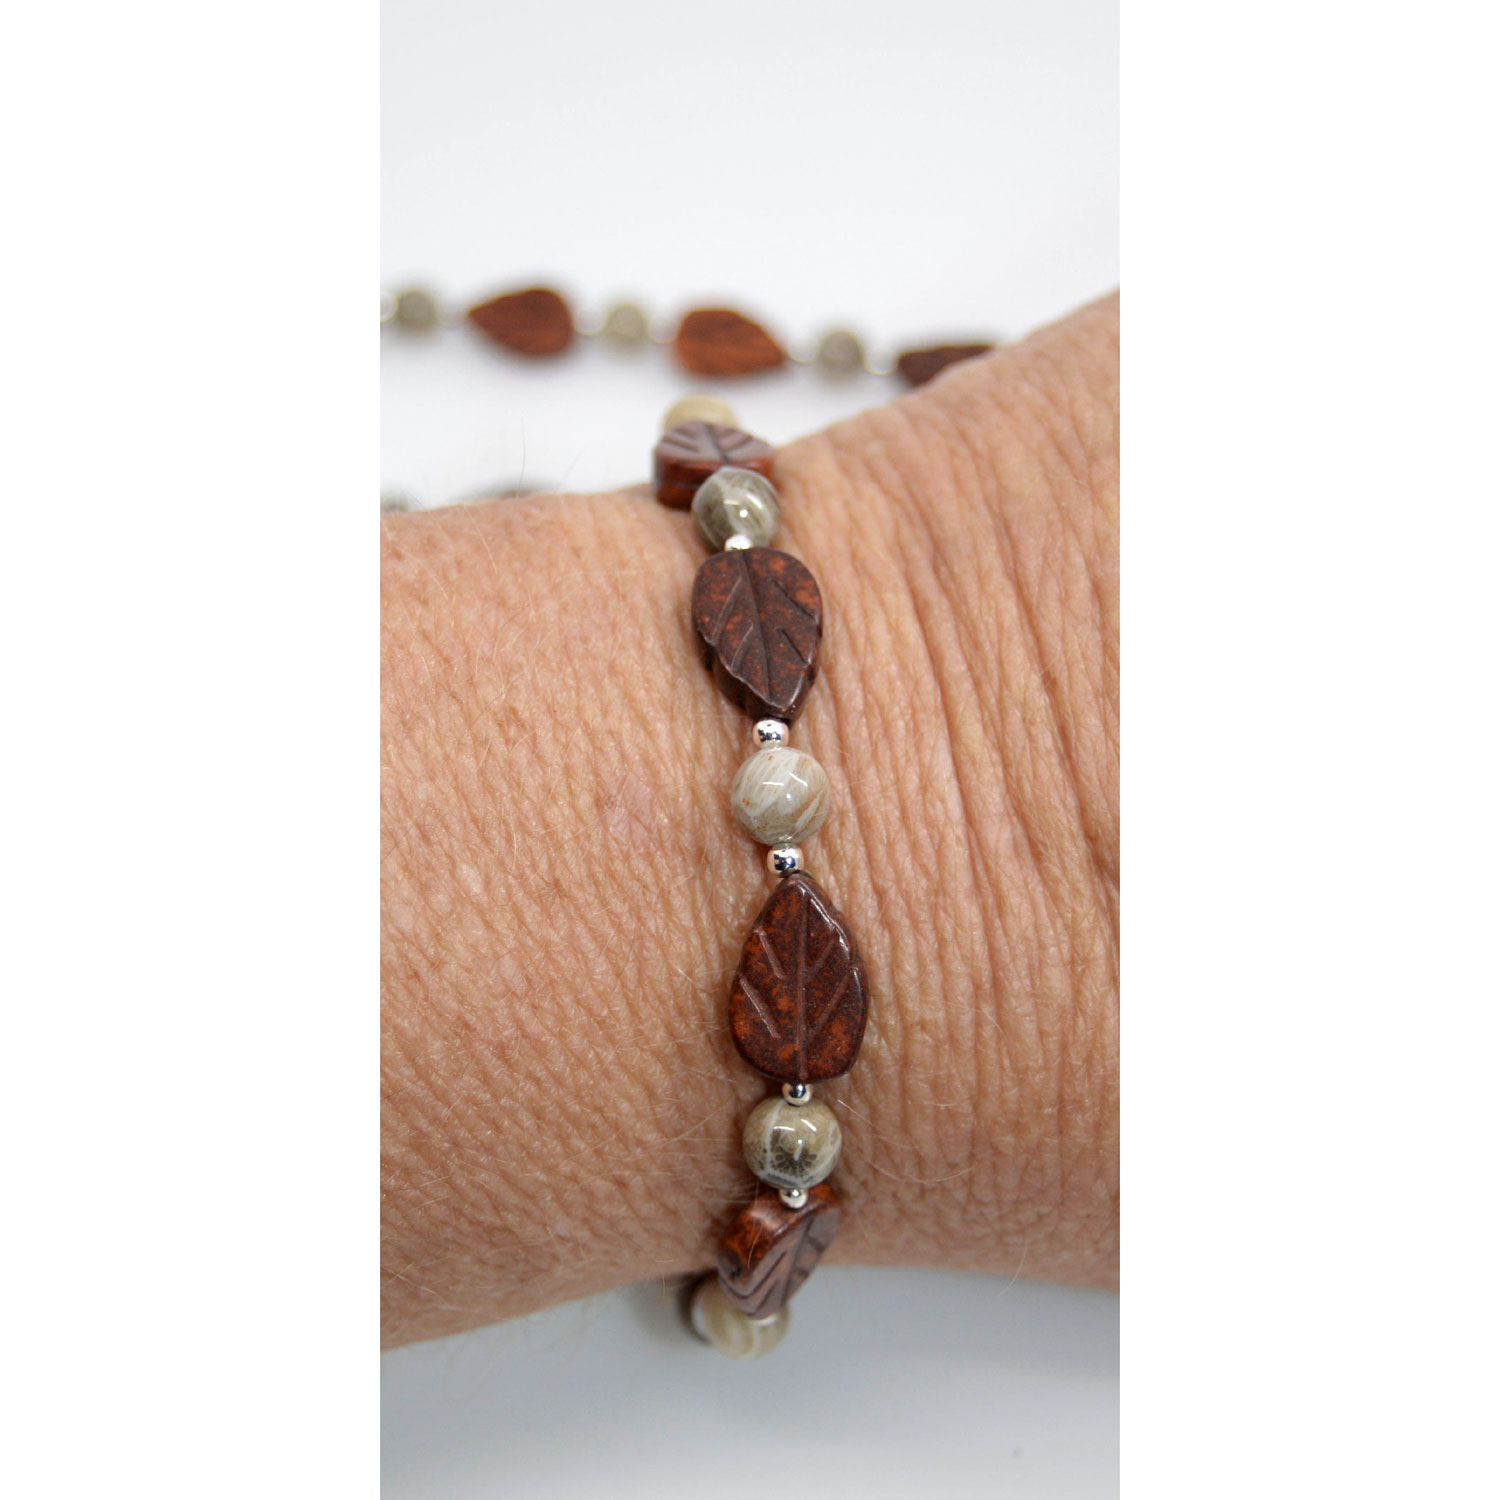 Jasper and Petoskey Stone Bracelet